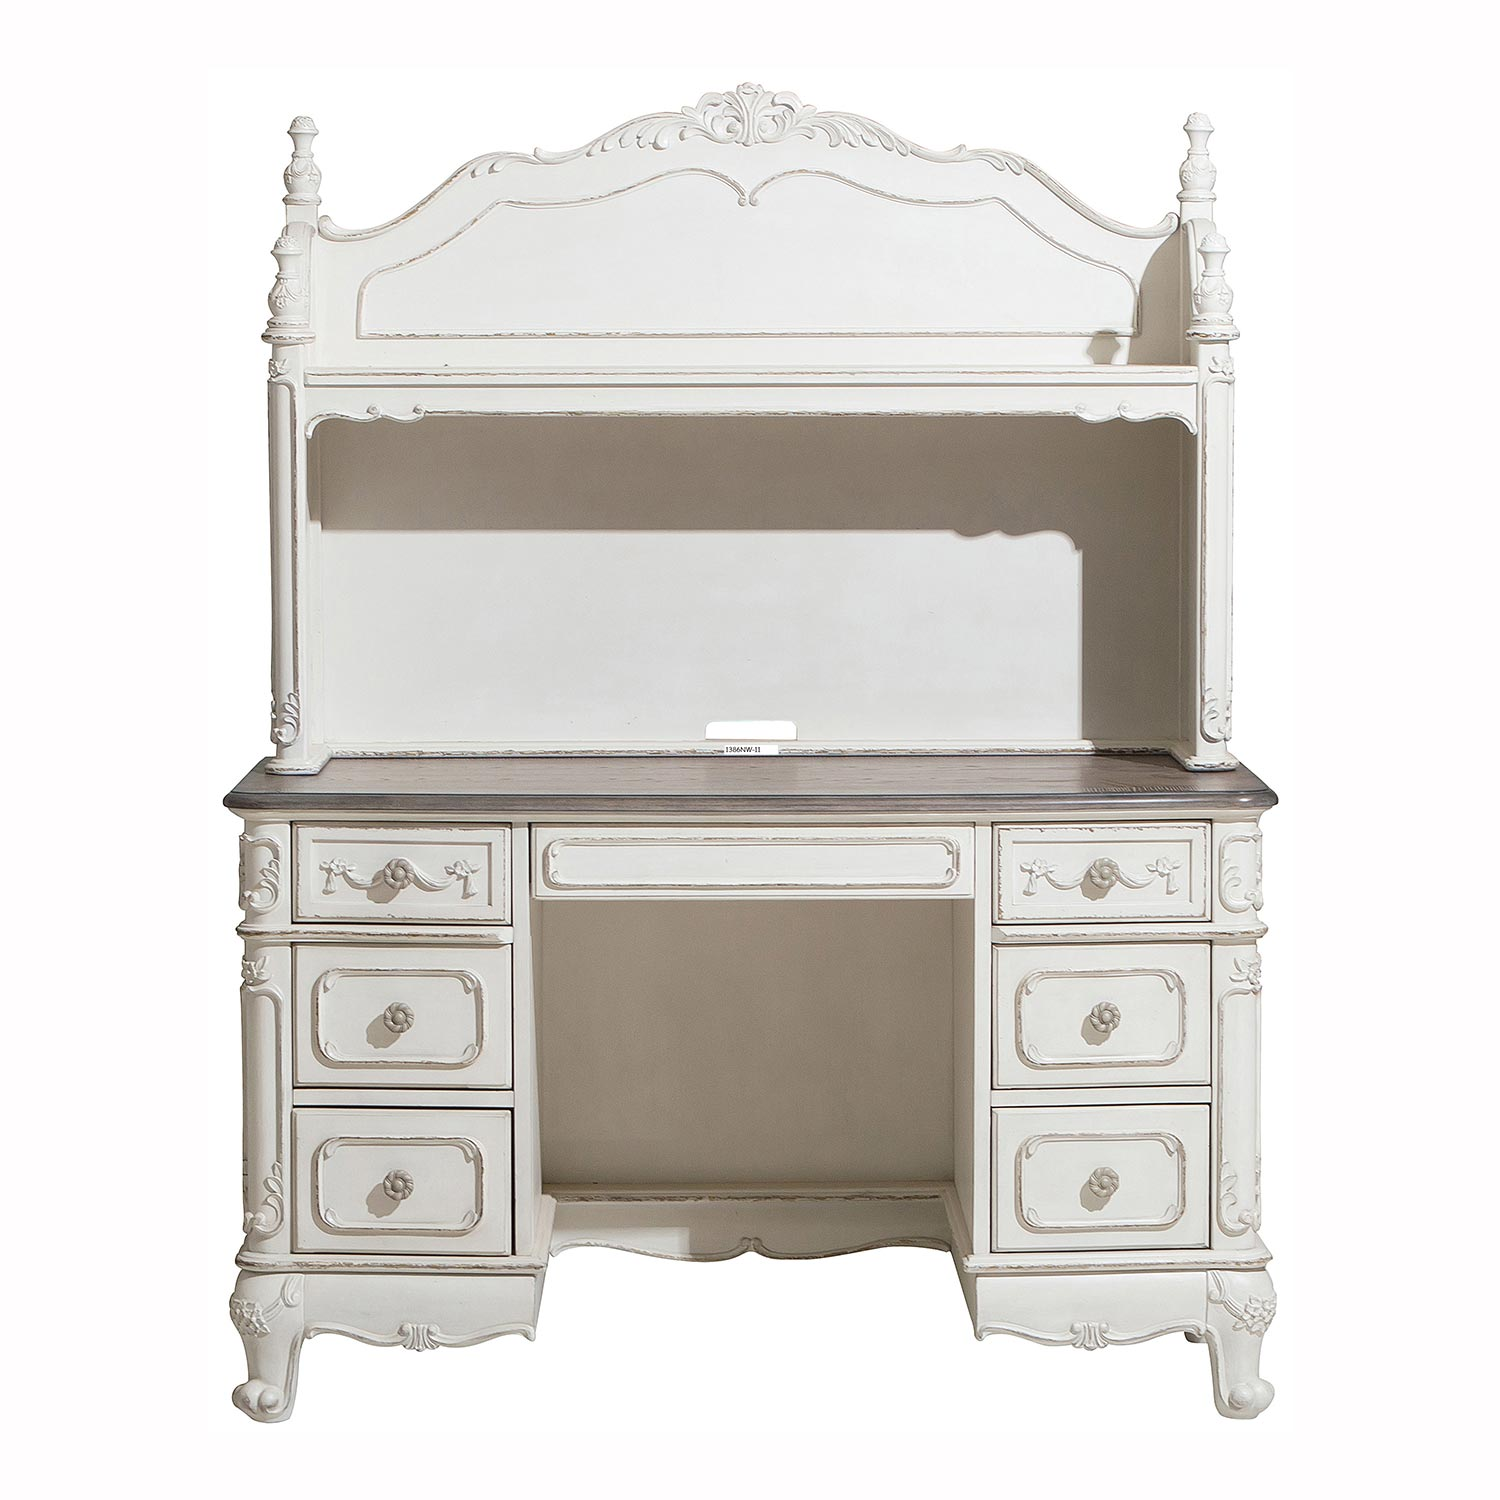 Homelegance Cinderella Writing Desk Hutch - Antique White with Gray Rub-Through